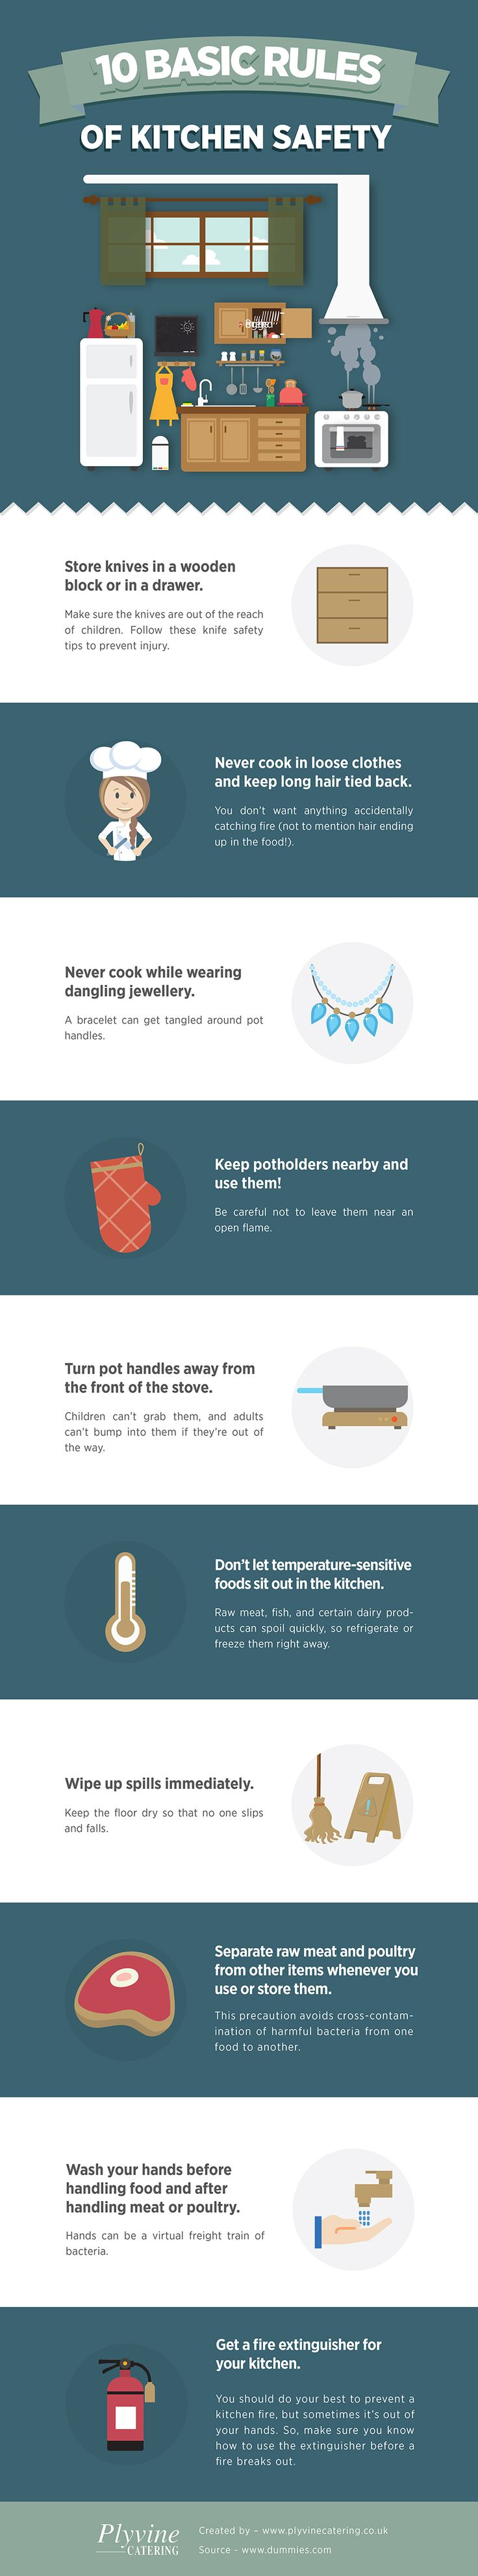 kitchen safety rules for baking